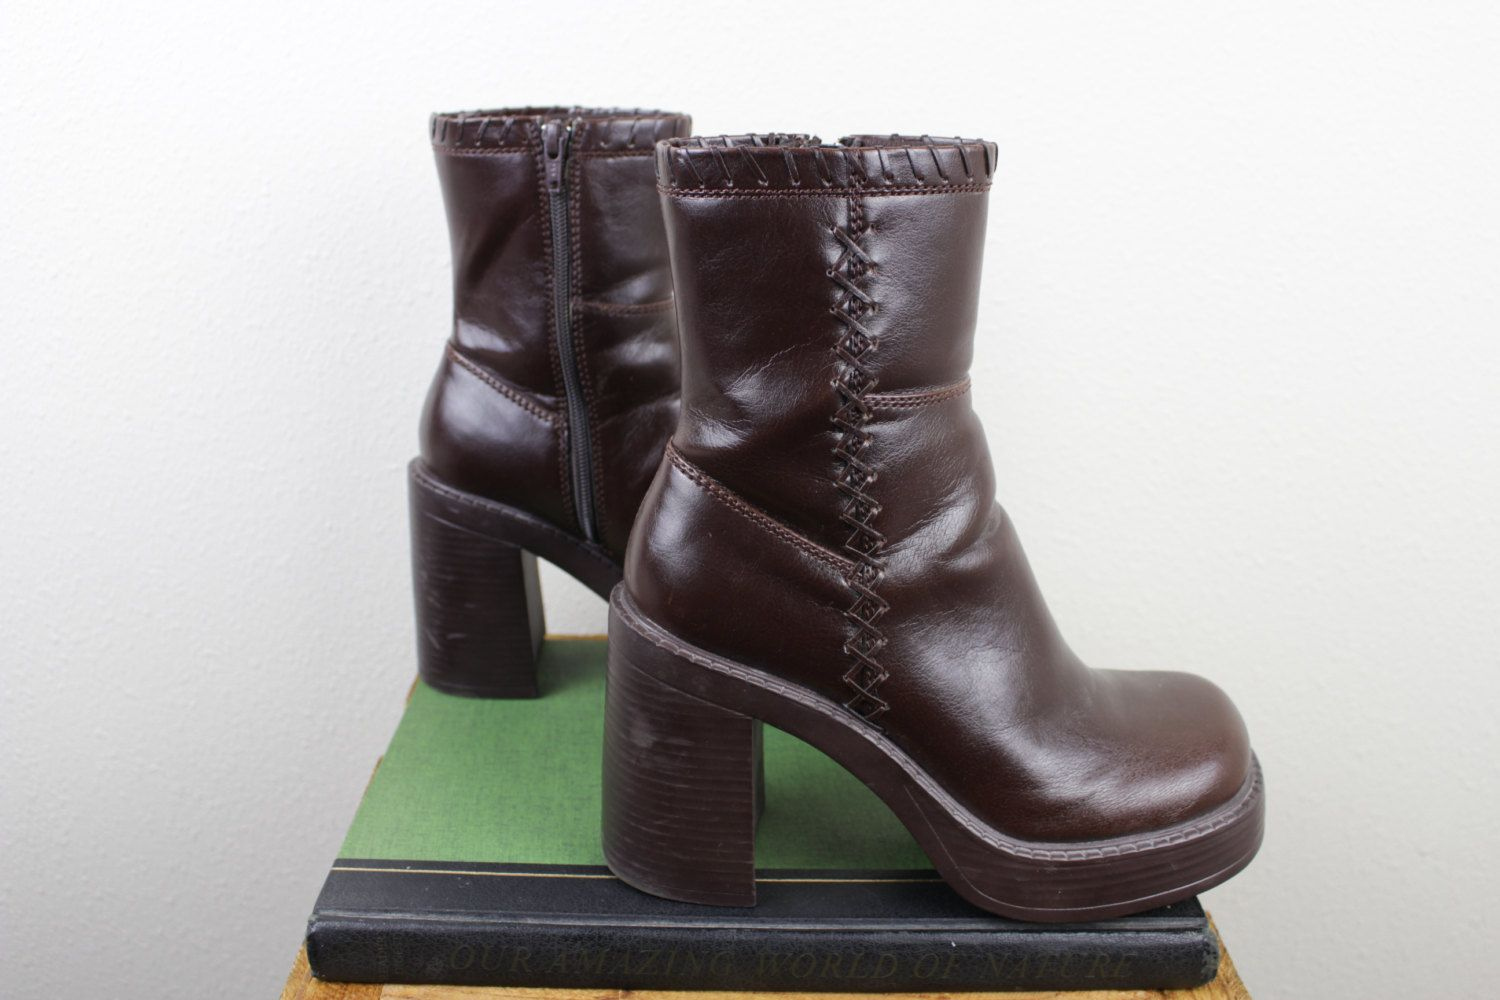 525b6ed1f967 Vintage Bongo Chunky Boots | 90s Vegan Leather Brown Platform Zip Boot |  Size 7.5 UK 5.5 Euro 38